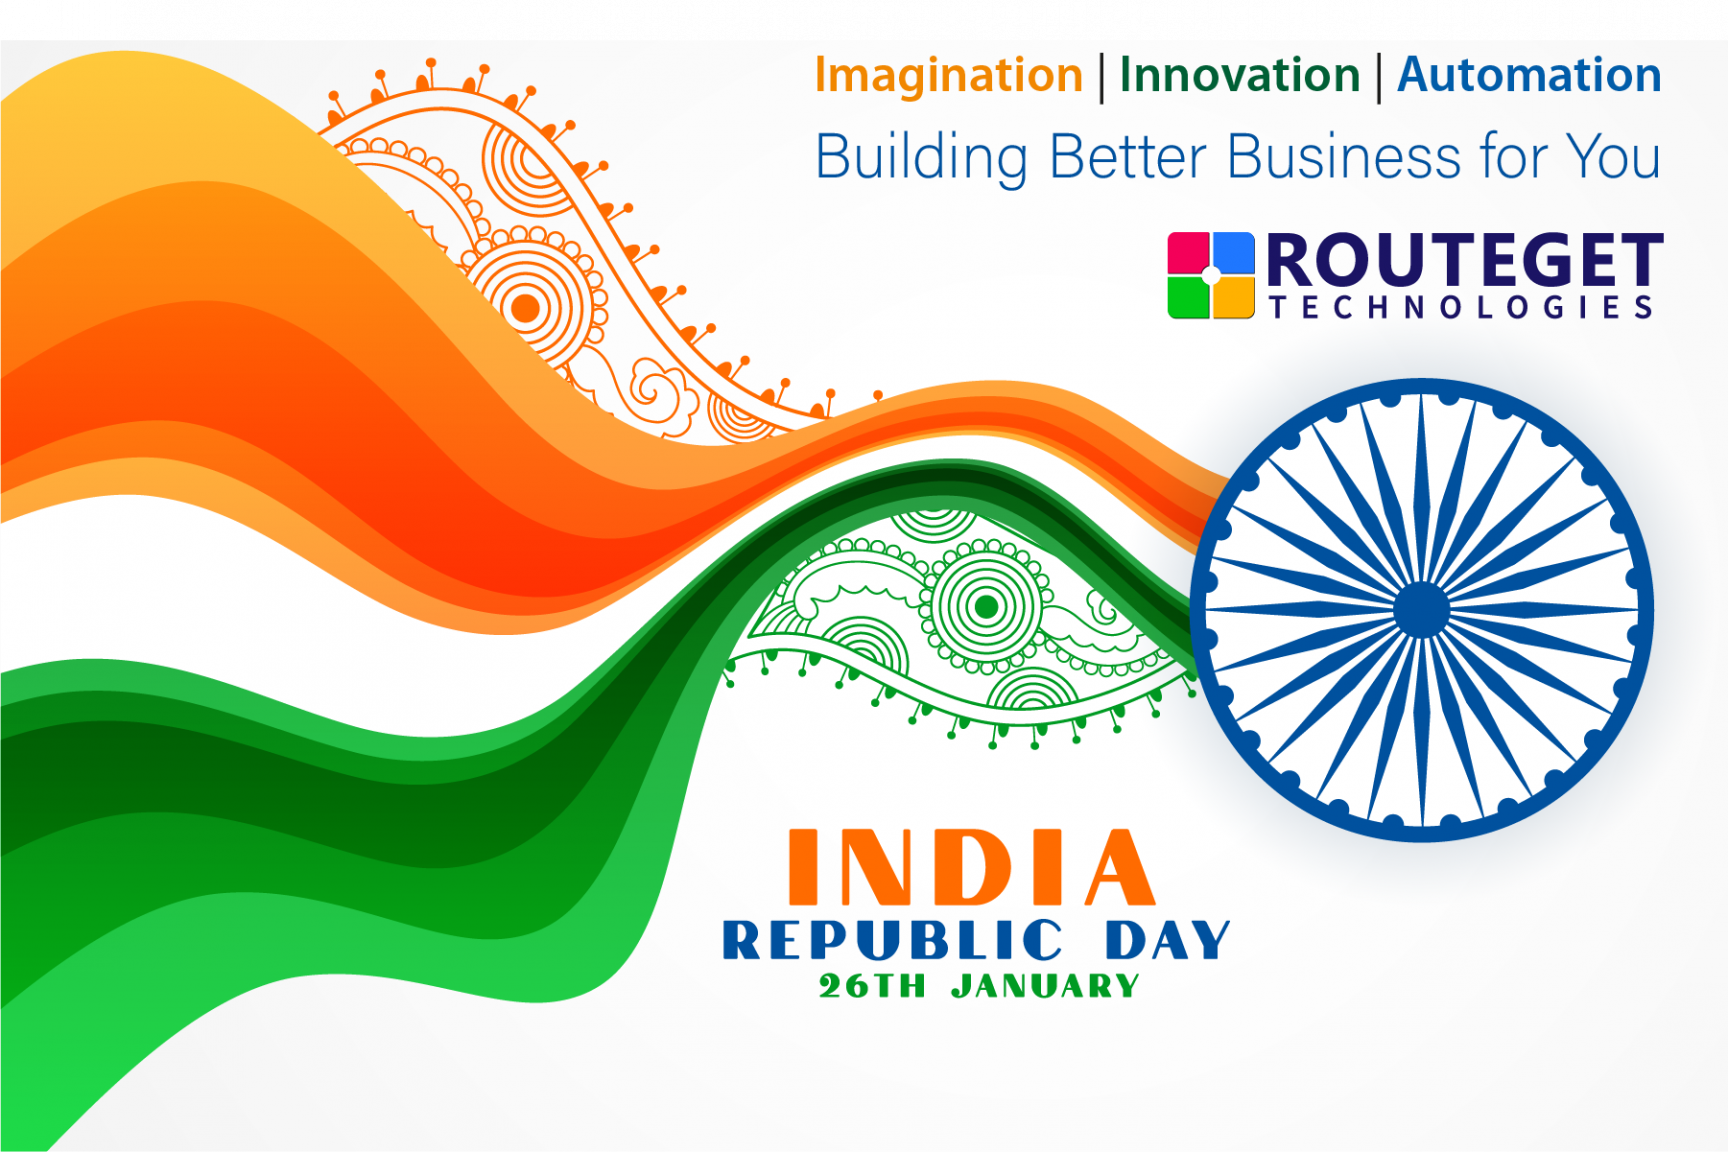 India on Wheels this Republic Day